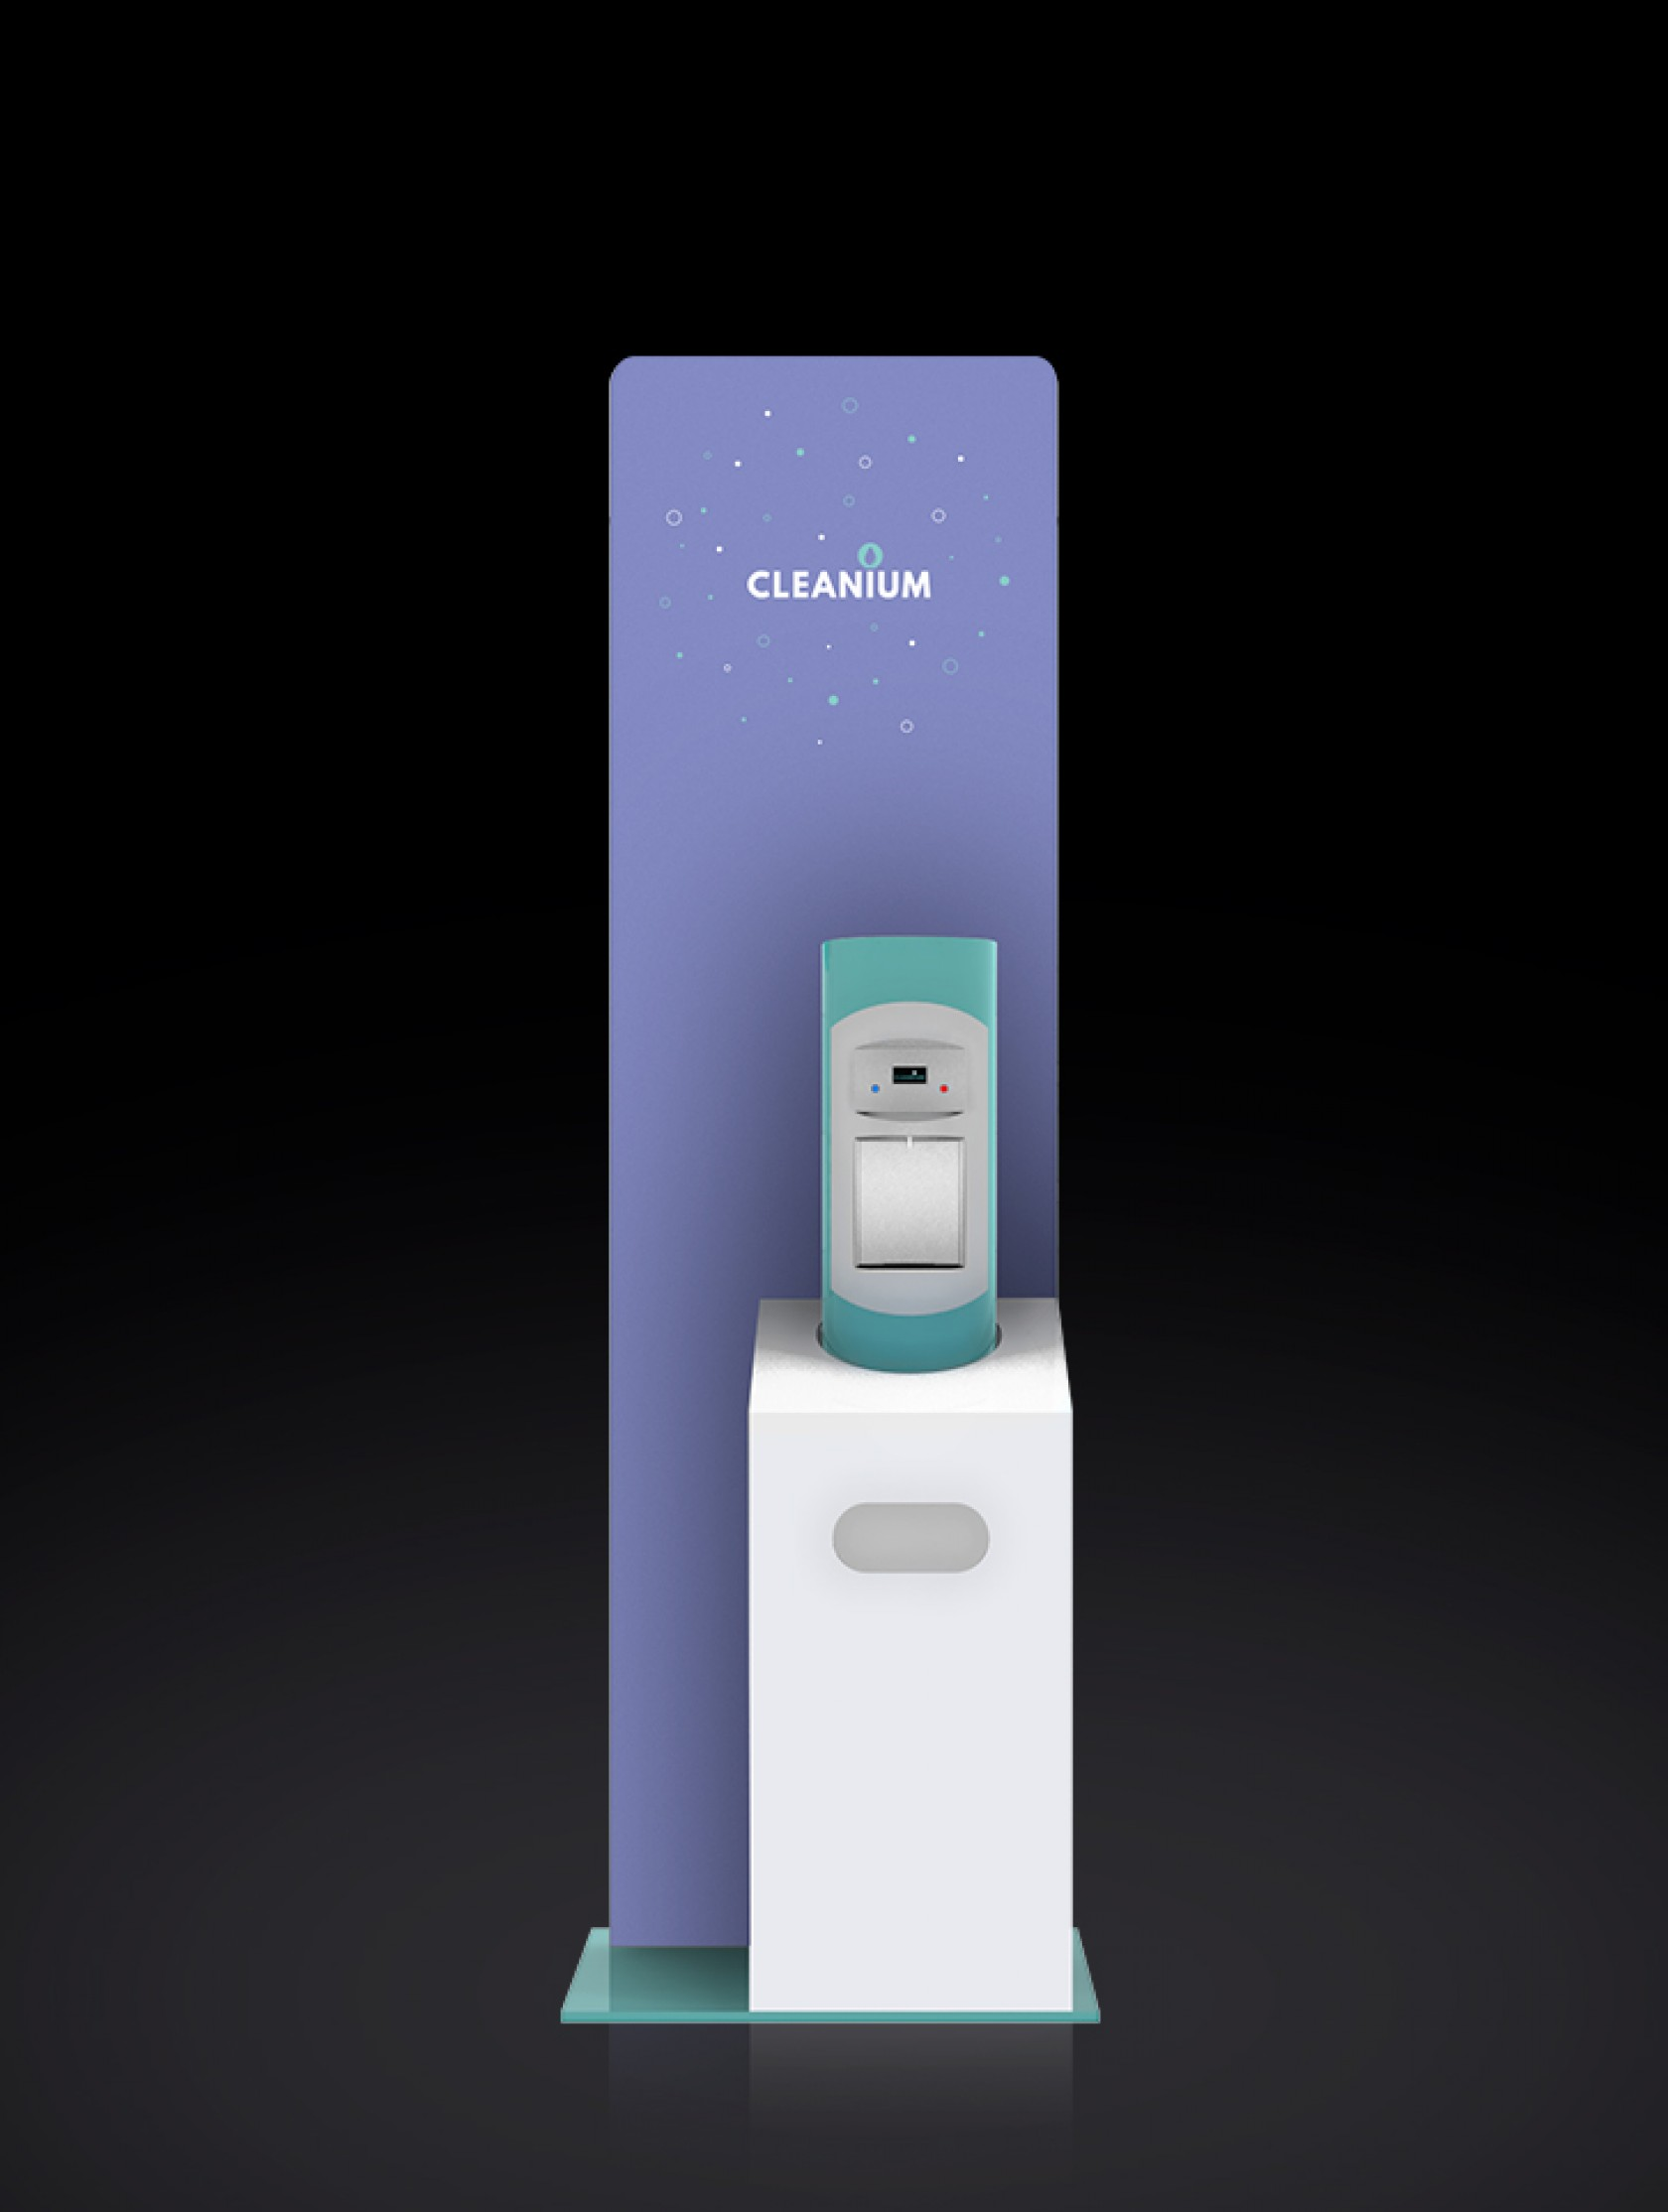 Voilàp Digital: Cleanium Child Teal_1 Cleanium Child è il dispenser igienizzante automatico a misura di bambino